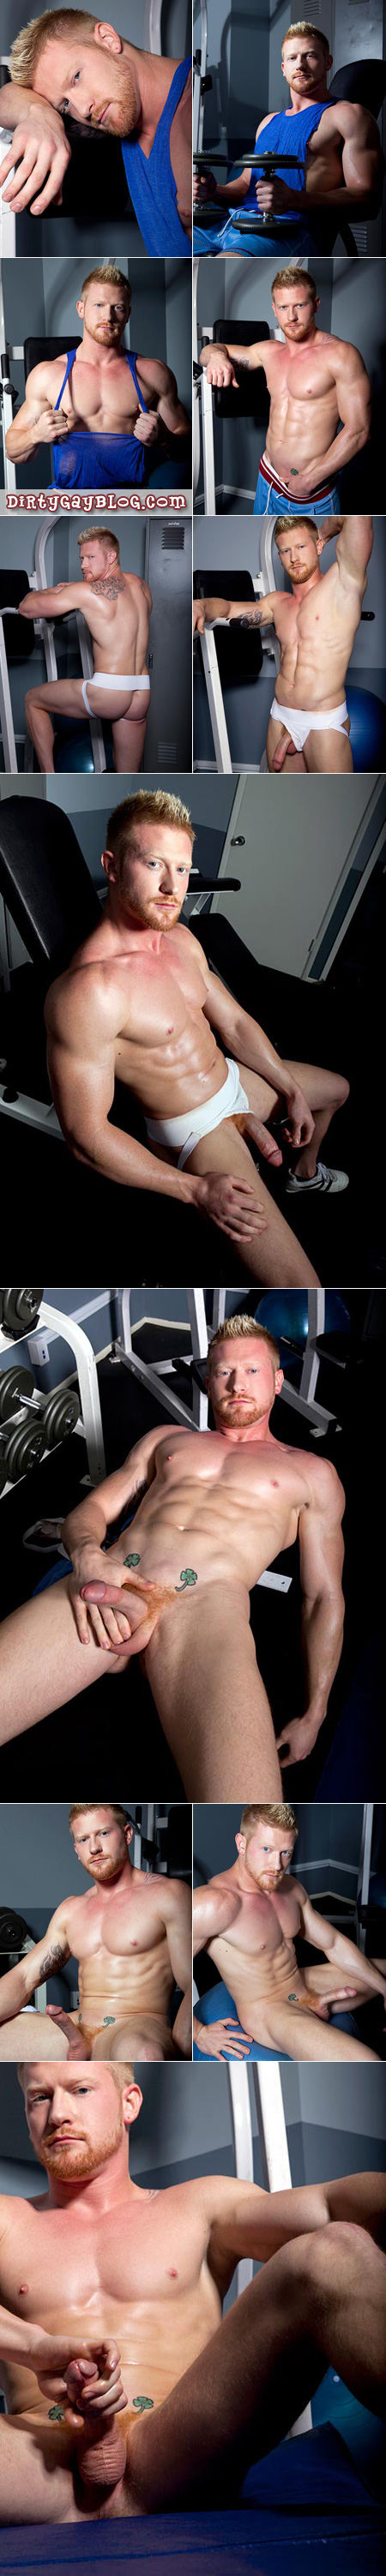 Strawberry blonde muscle guy for worship and cumming